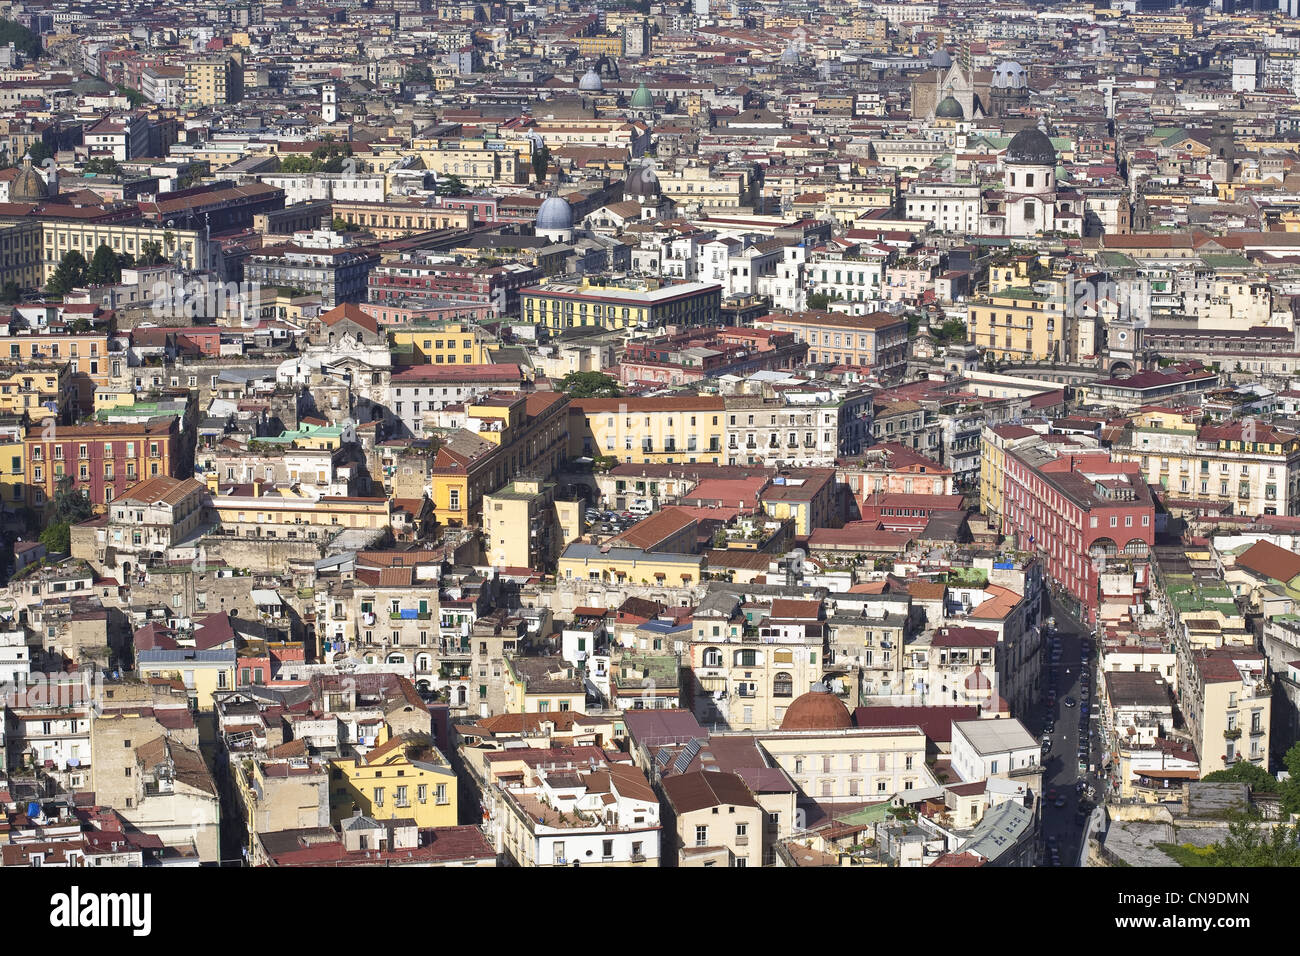 Italy, Campania, Naples, view over the Historic center (listed as World Heritage by UNESCO) from San Martino Charterhouse - Stock Image